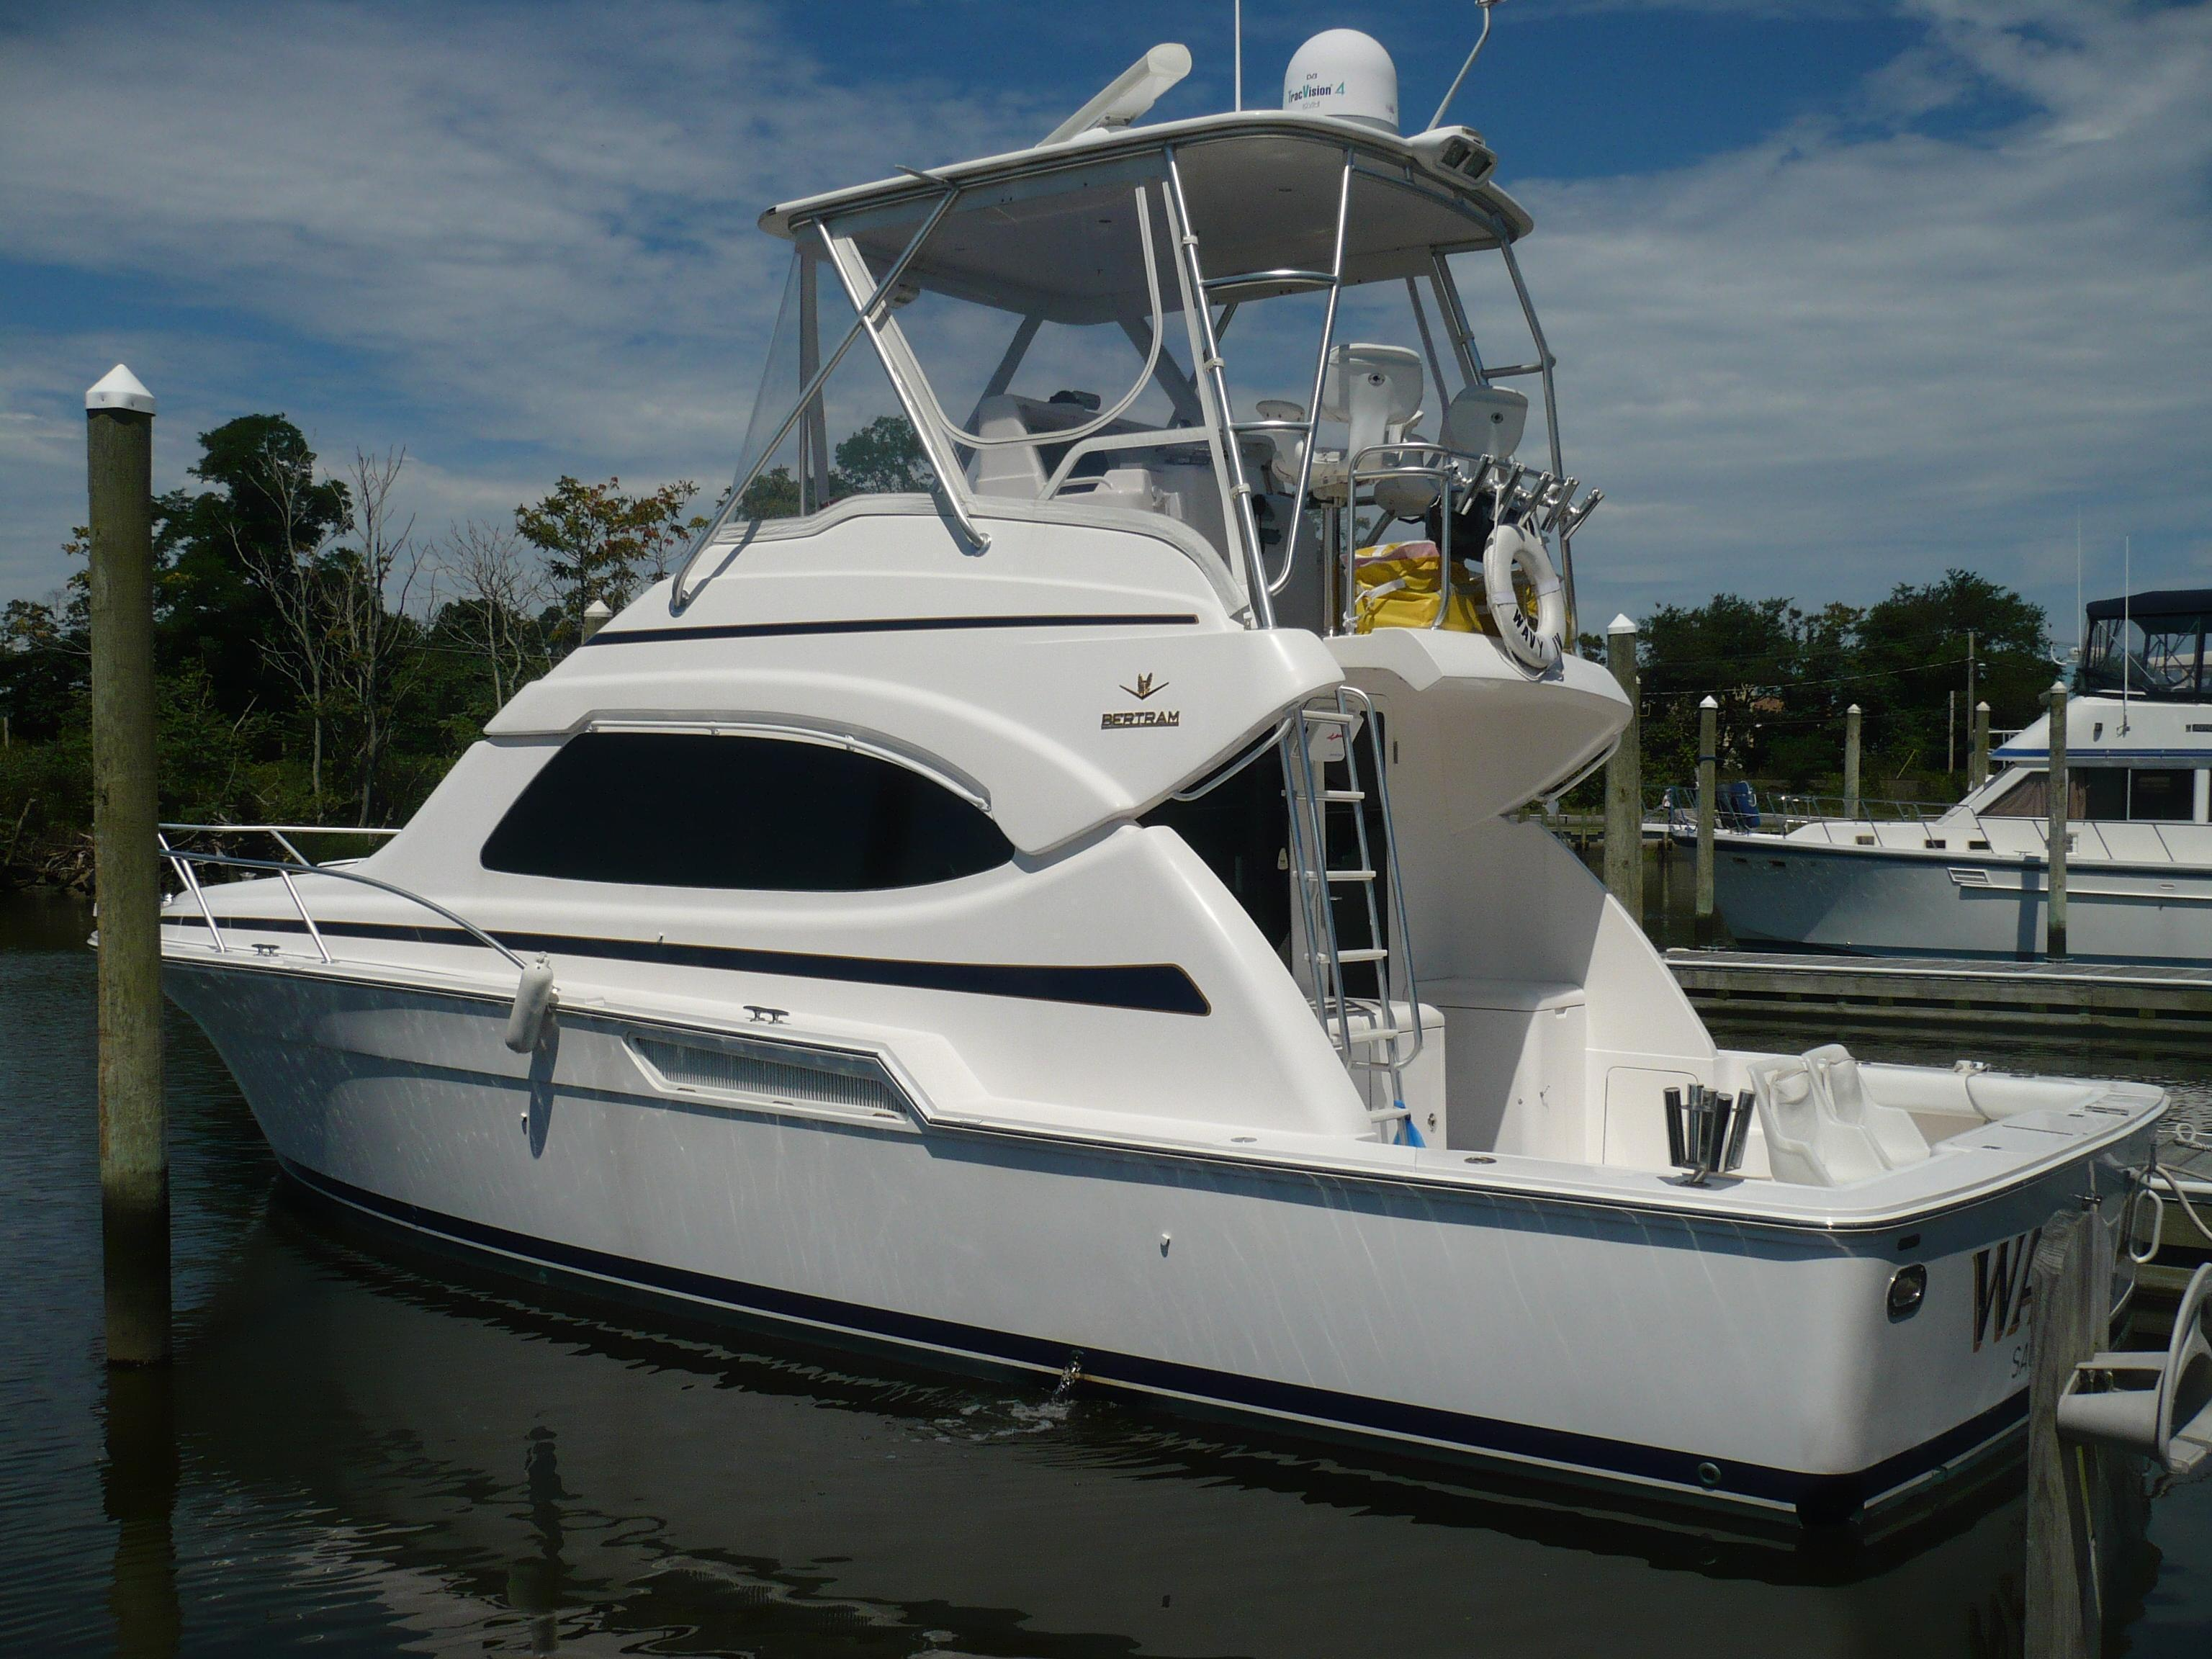 Bertram 390 Convertible, Aquebogue